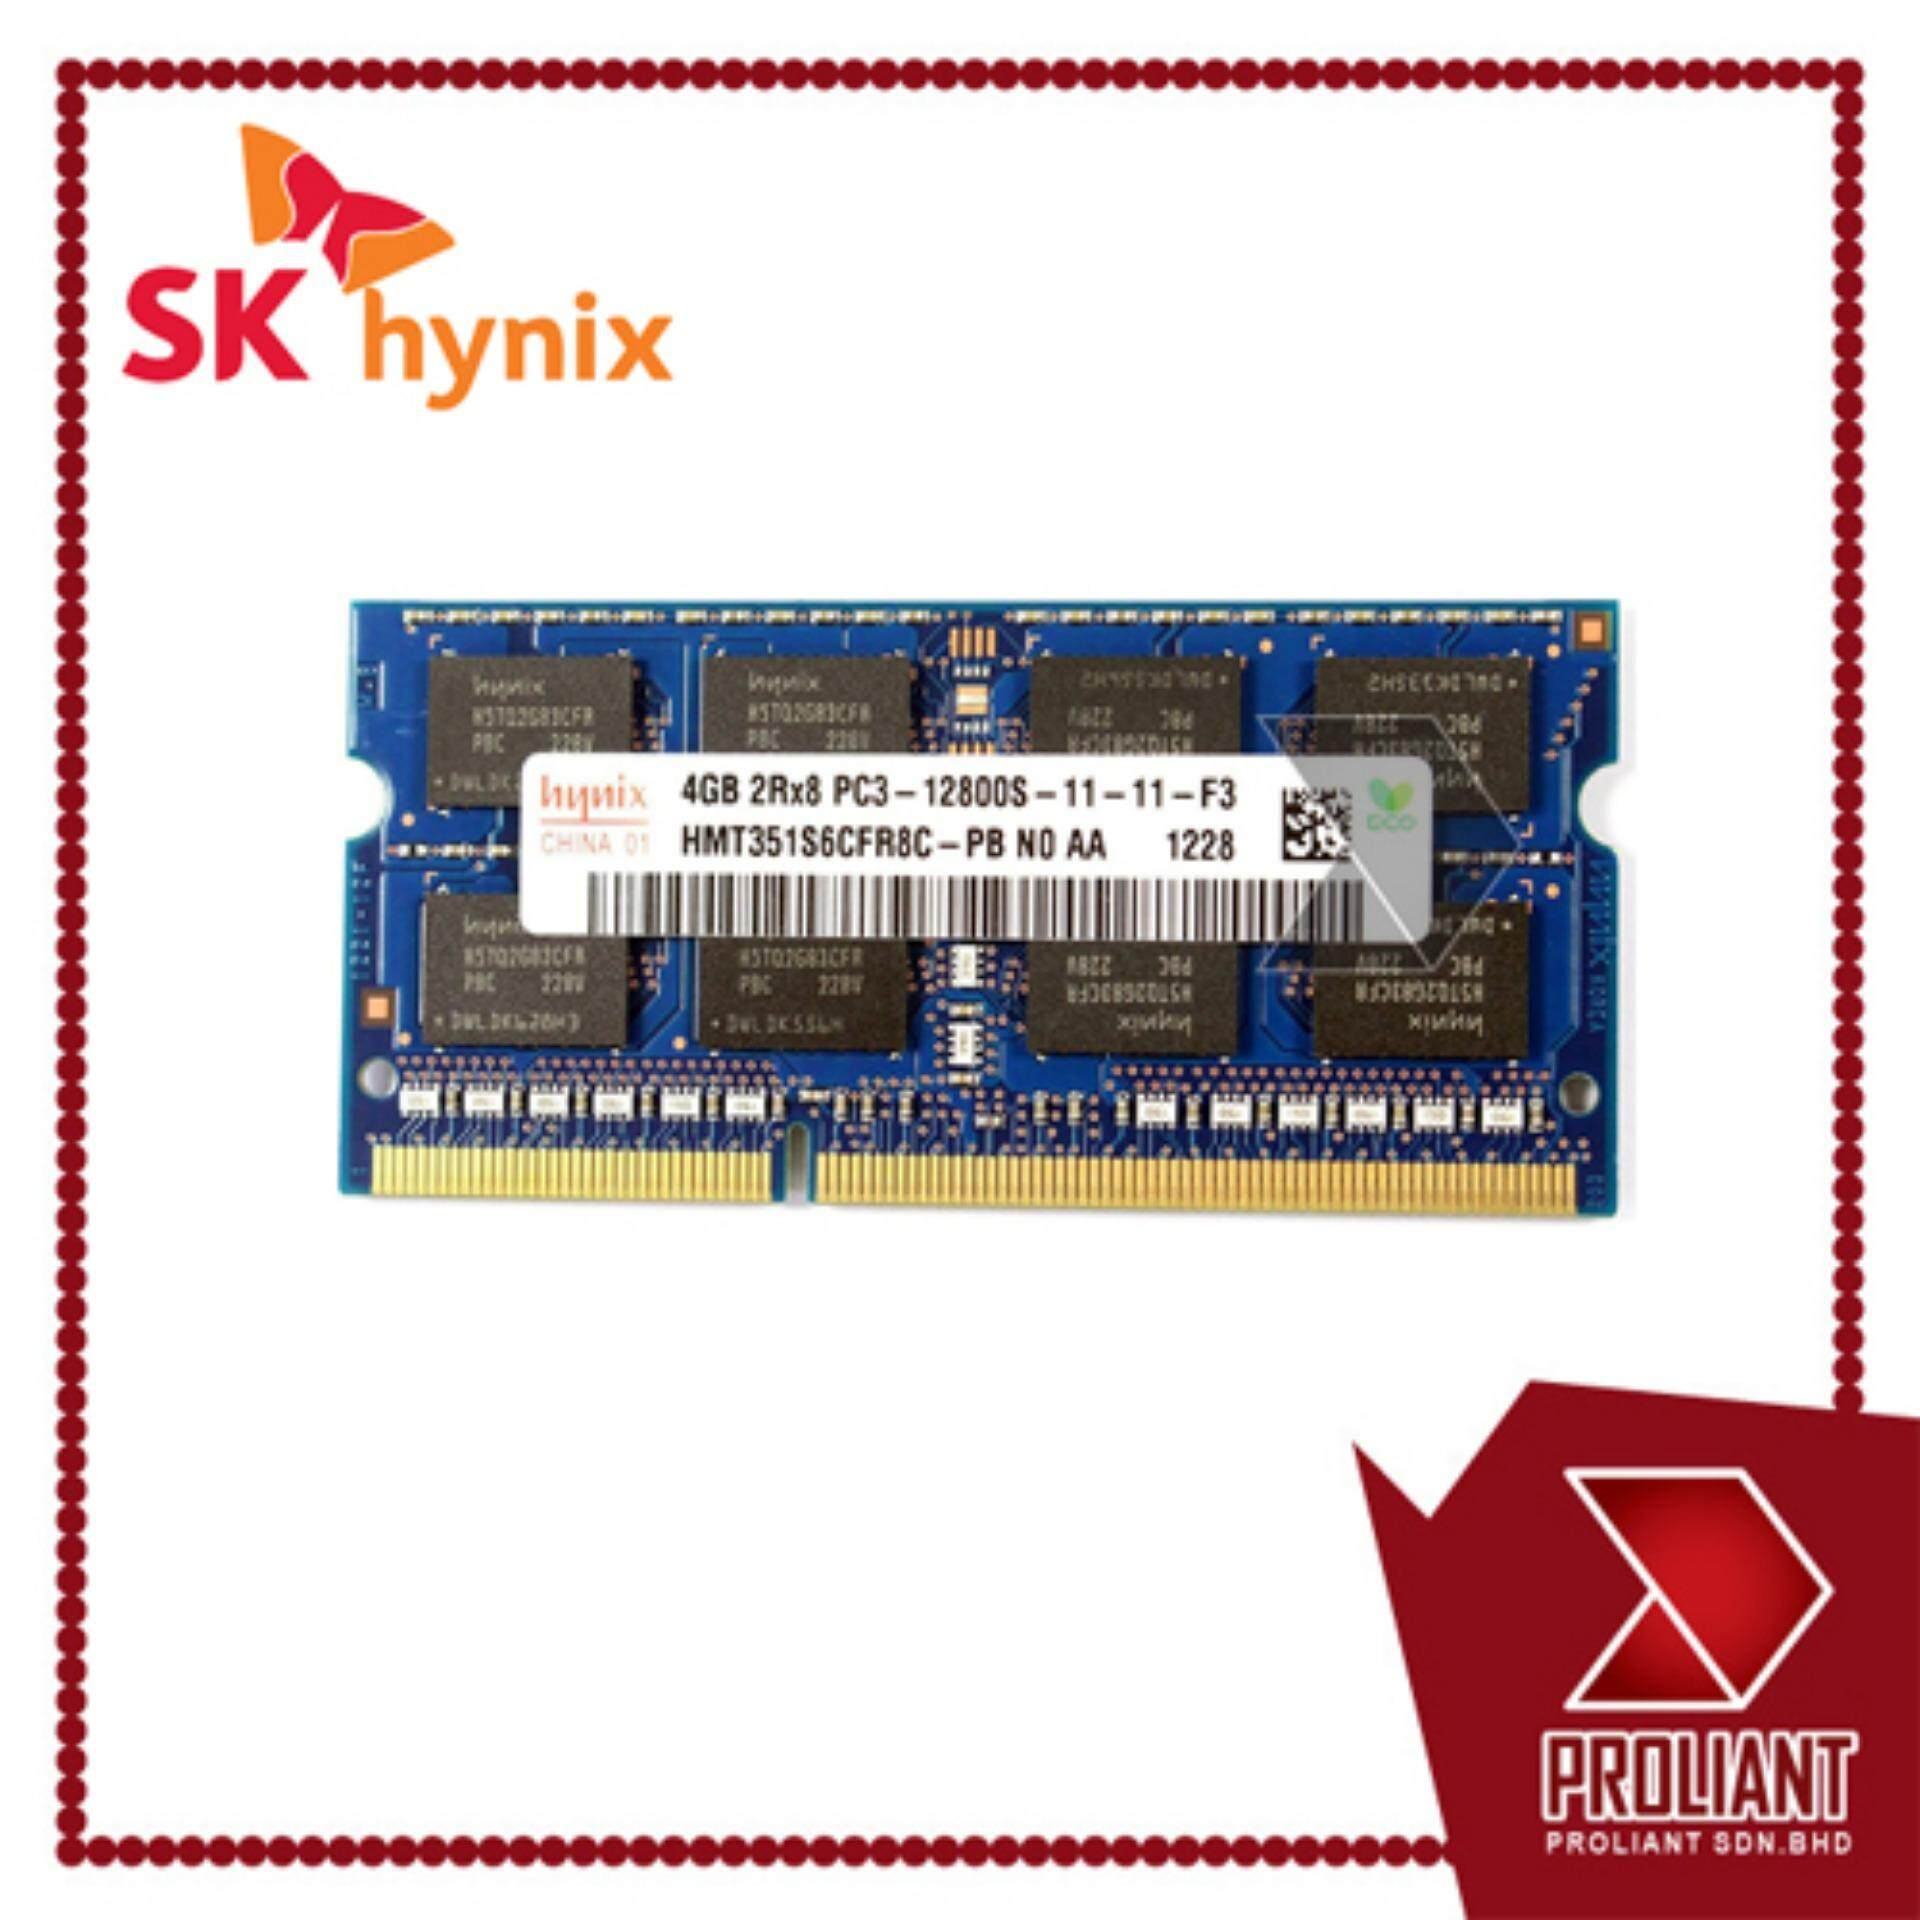 Hynix Computer Component Ram Price In Malaysia Best Ddr3 2gb Pc 8500u 10600u 4gb 1600mhz Pc3 12800 Laptop 3 Year Warranty